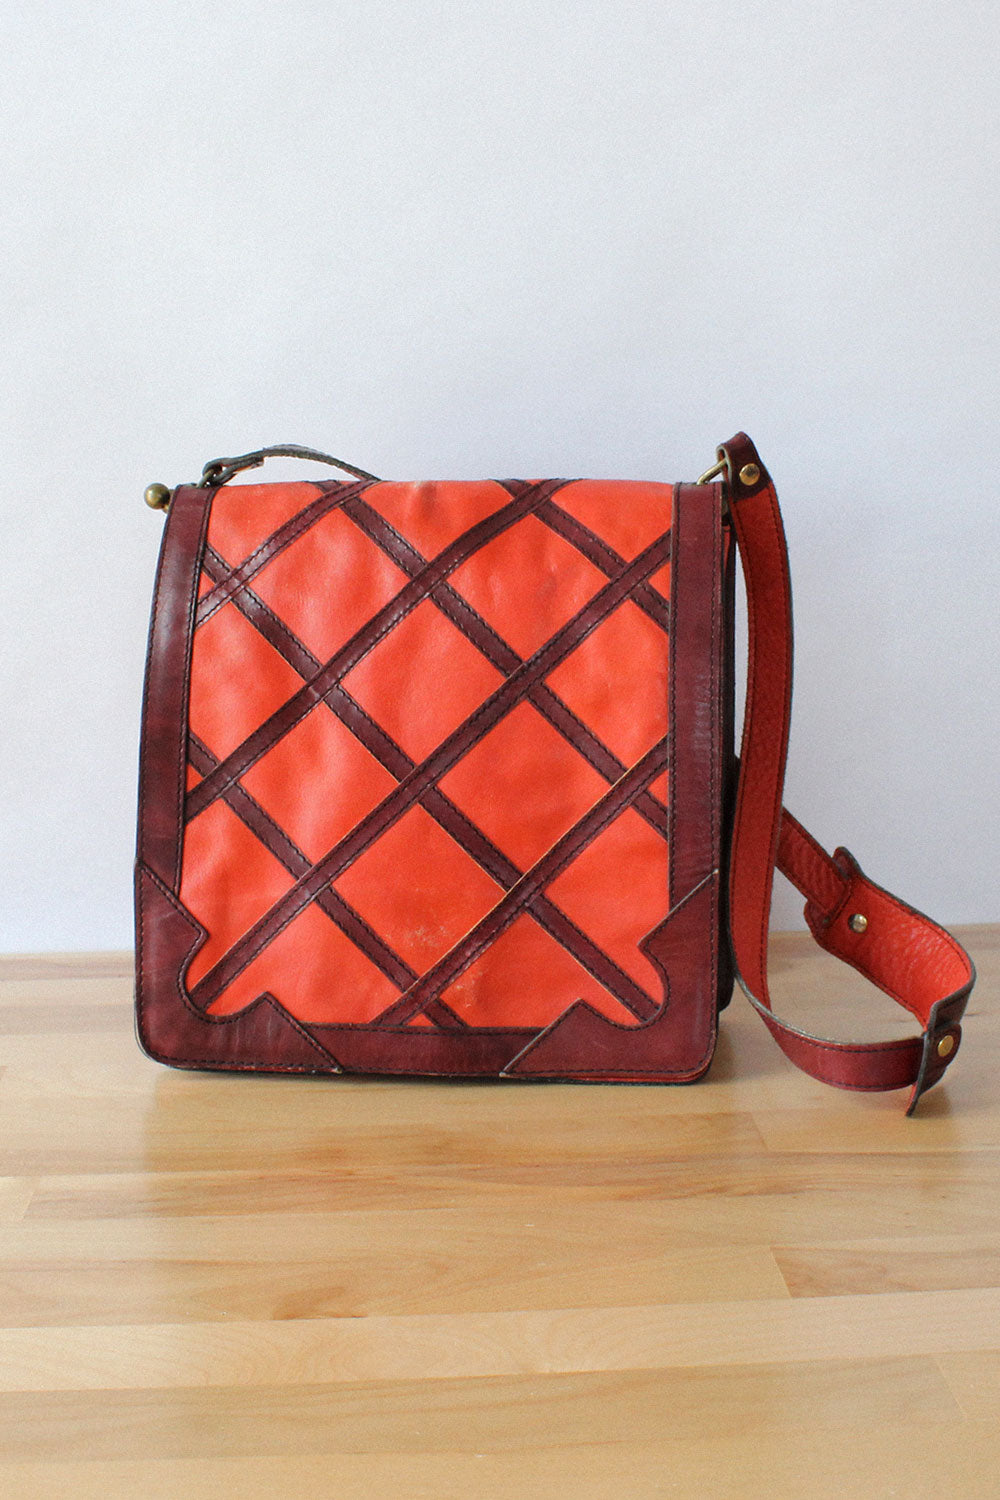 Brick Lattice Leather Satchel